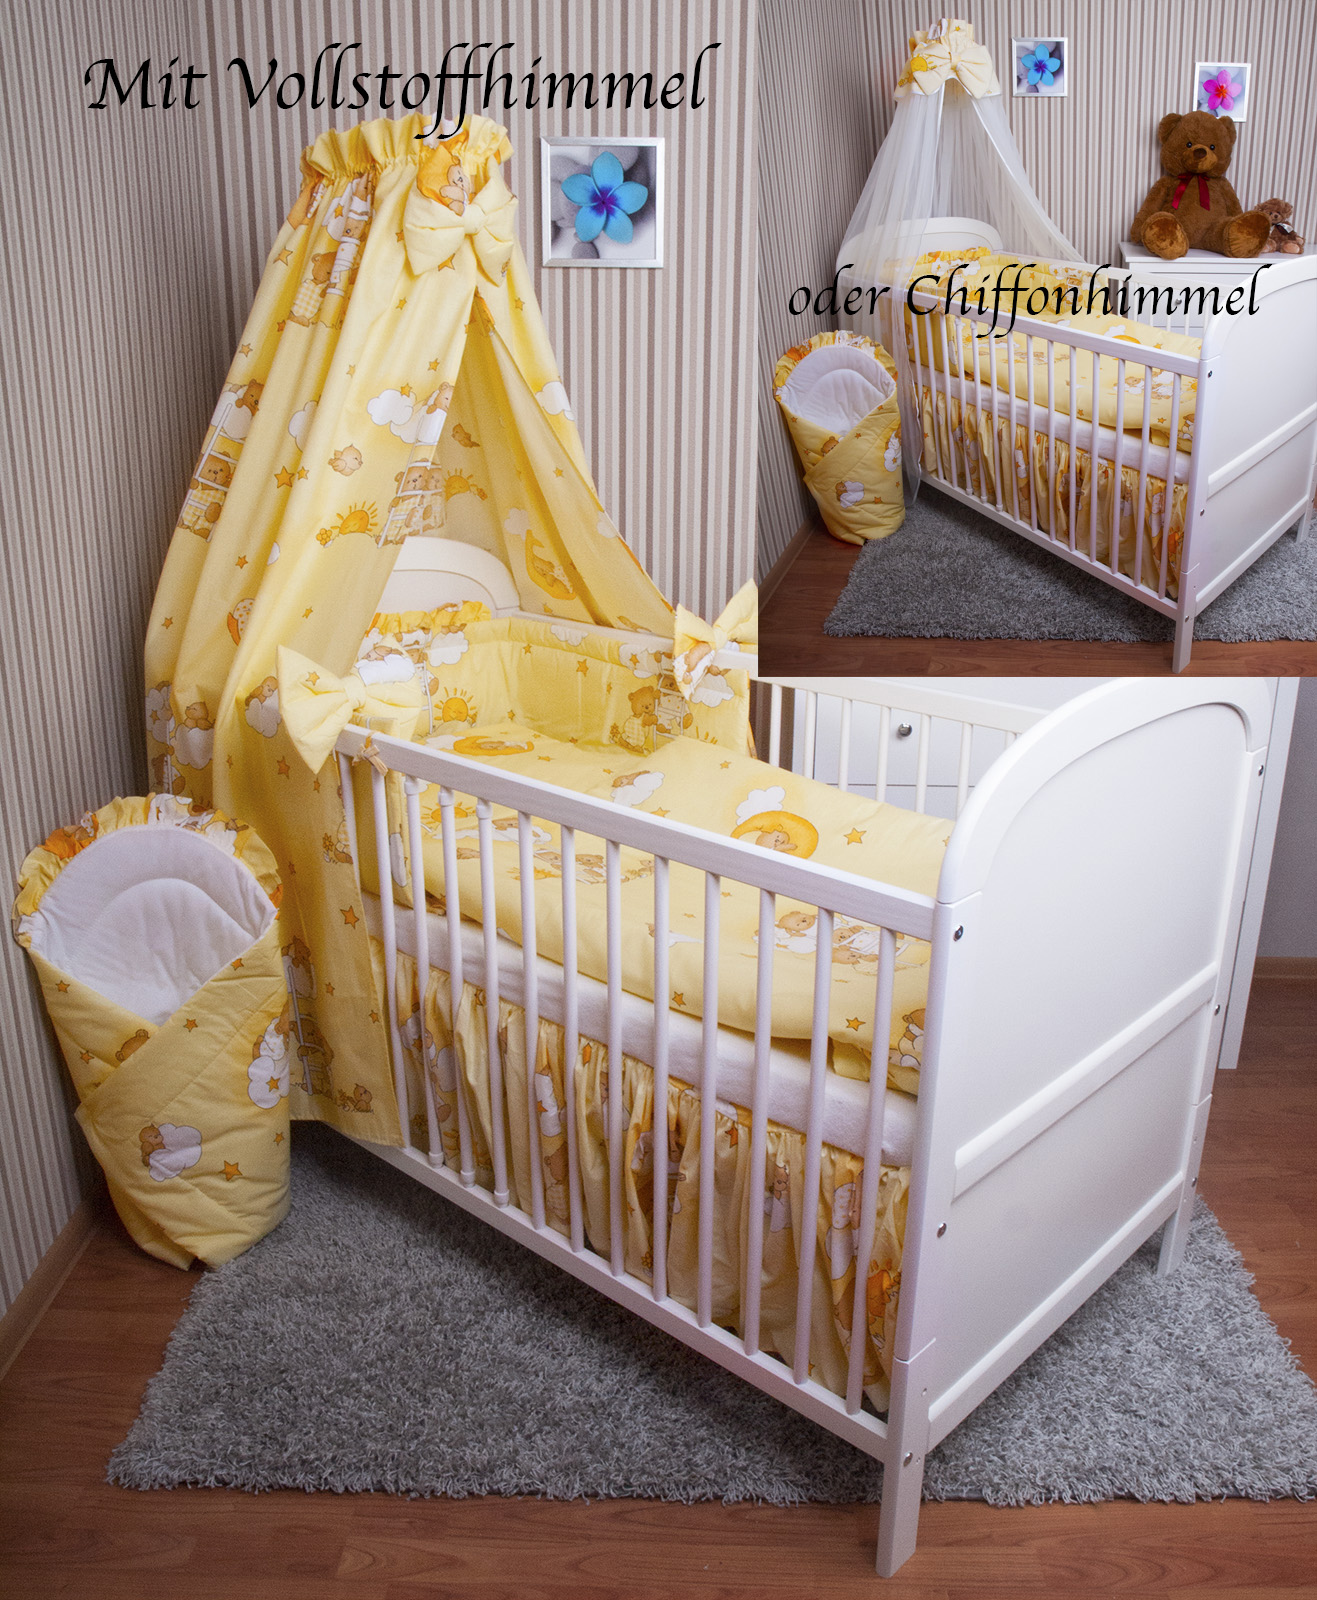 baby bettw sche himmel nestchen bettset 100x135cm f r babybett decke kissen neu ebay. Black Bedroom Furniture Sets. Home Design Ideas